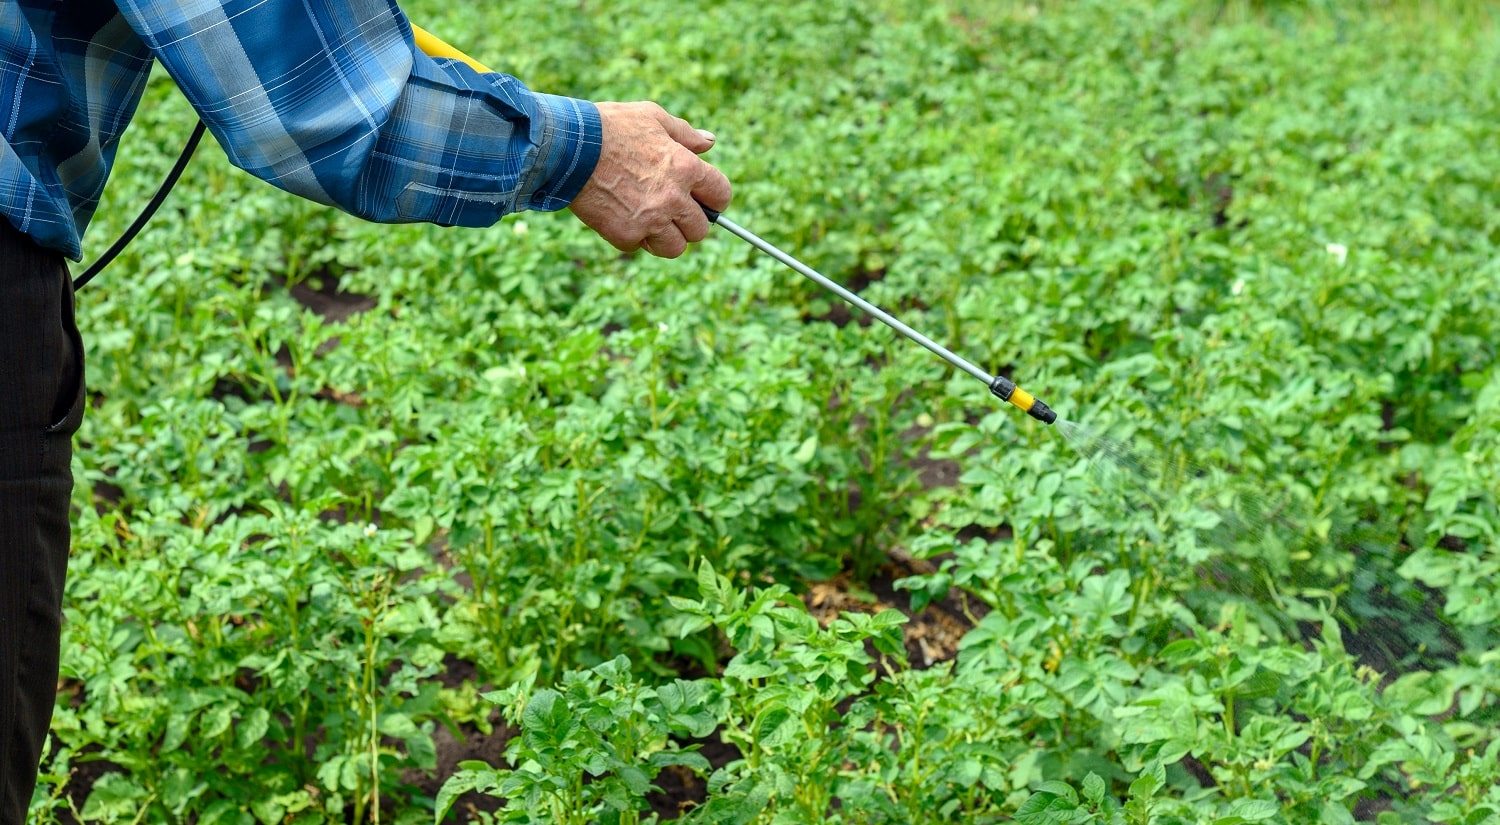 Adult male treats pesticides from Colorado beetles young green potato bushes.